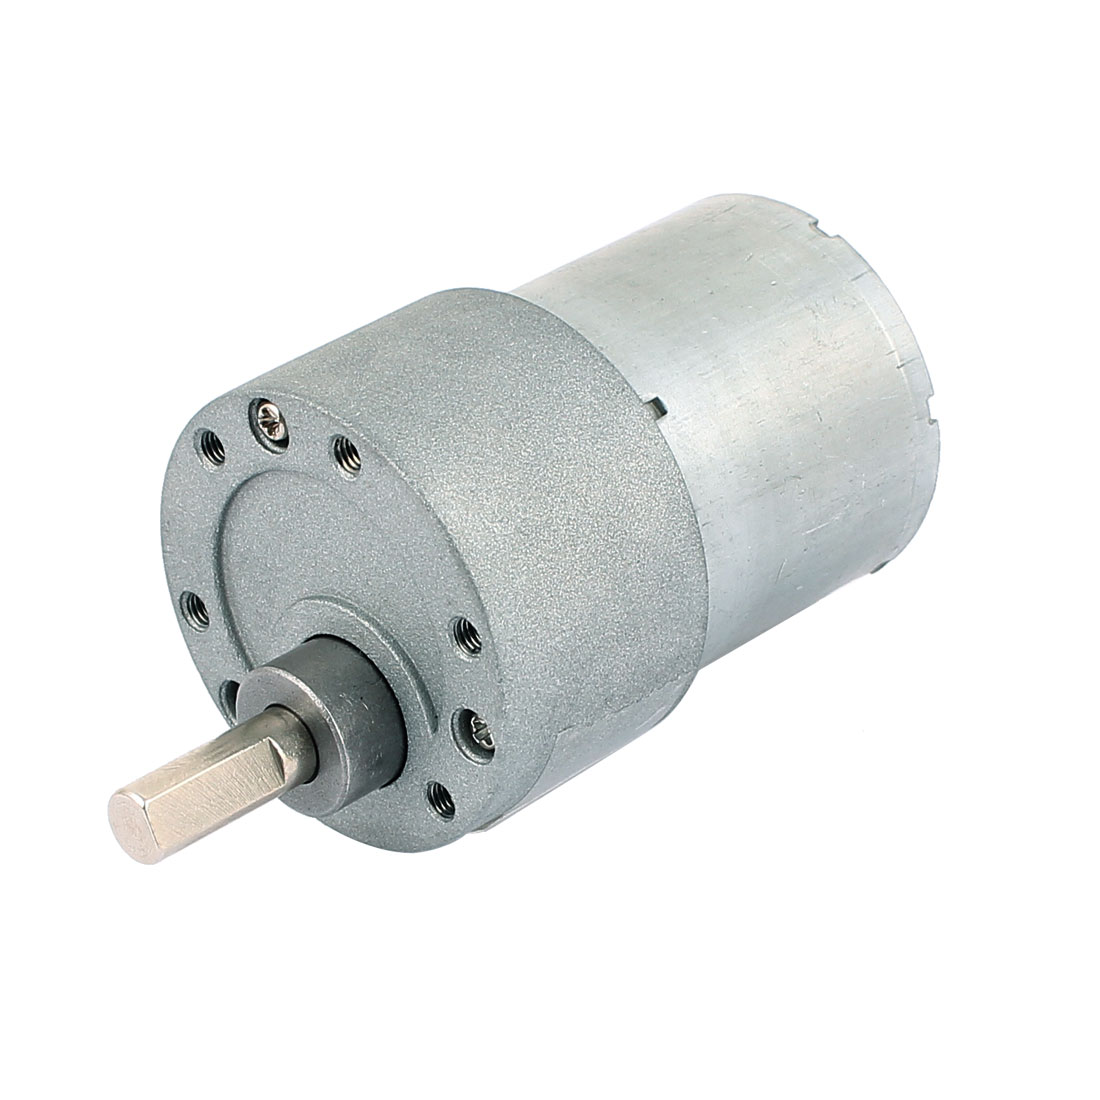 DC 12V 420RPM 6mm Shaft Dia Repairing Part Electric Geared Motor 37GB